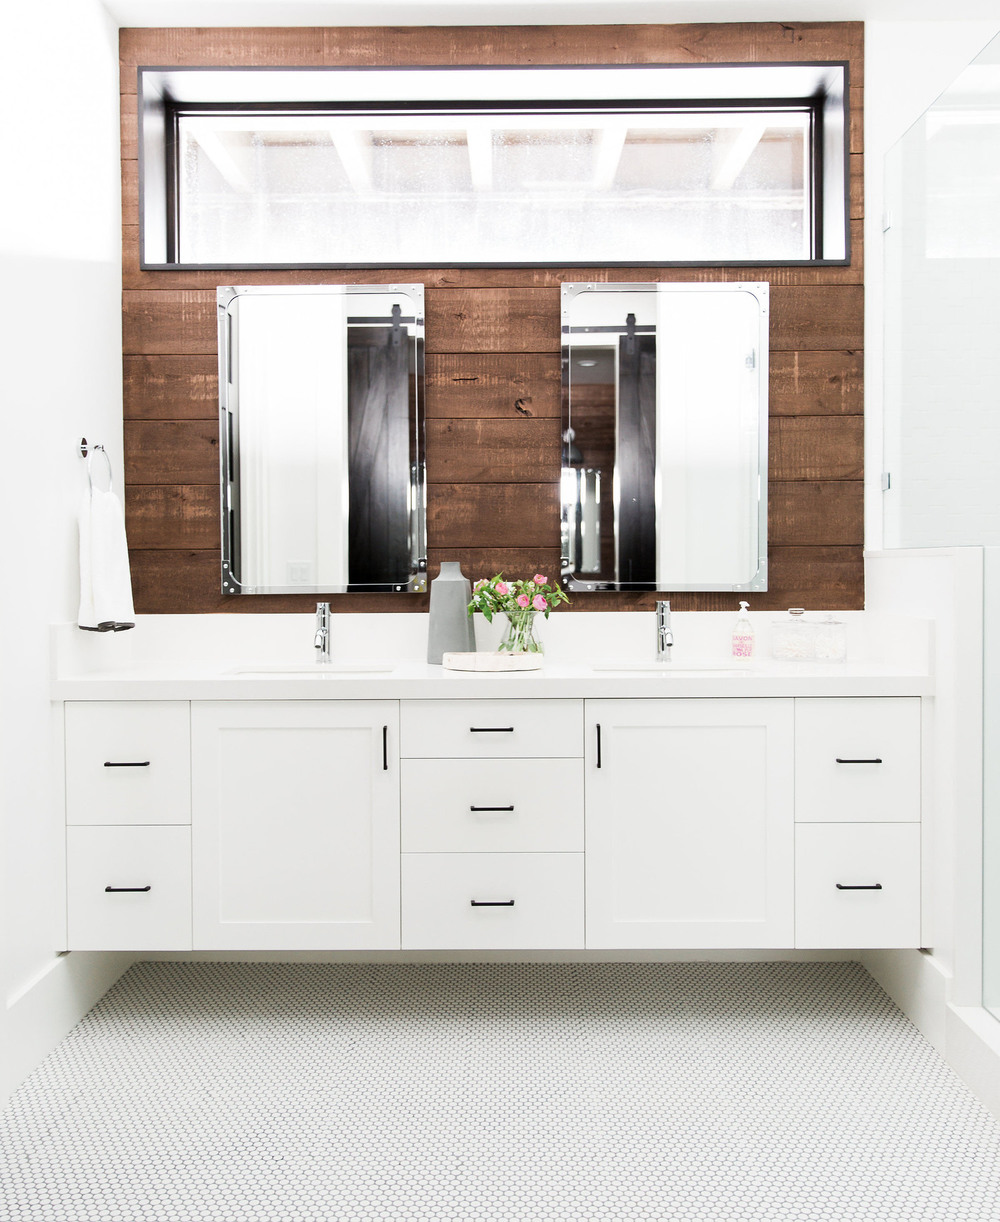 Clean and modern bathroom with natural wood accent wall.